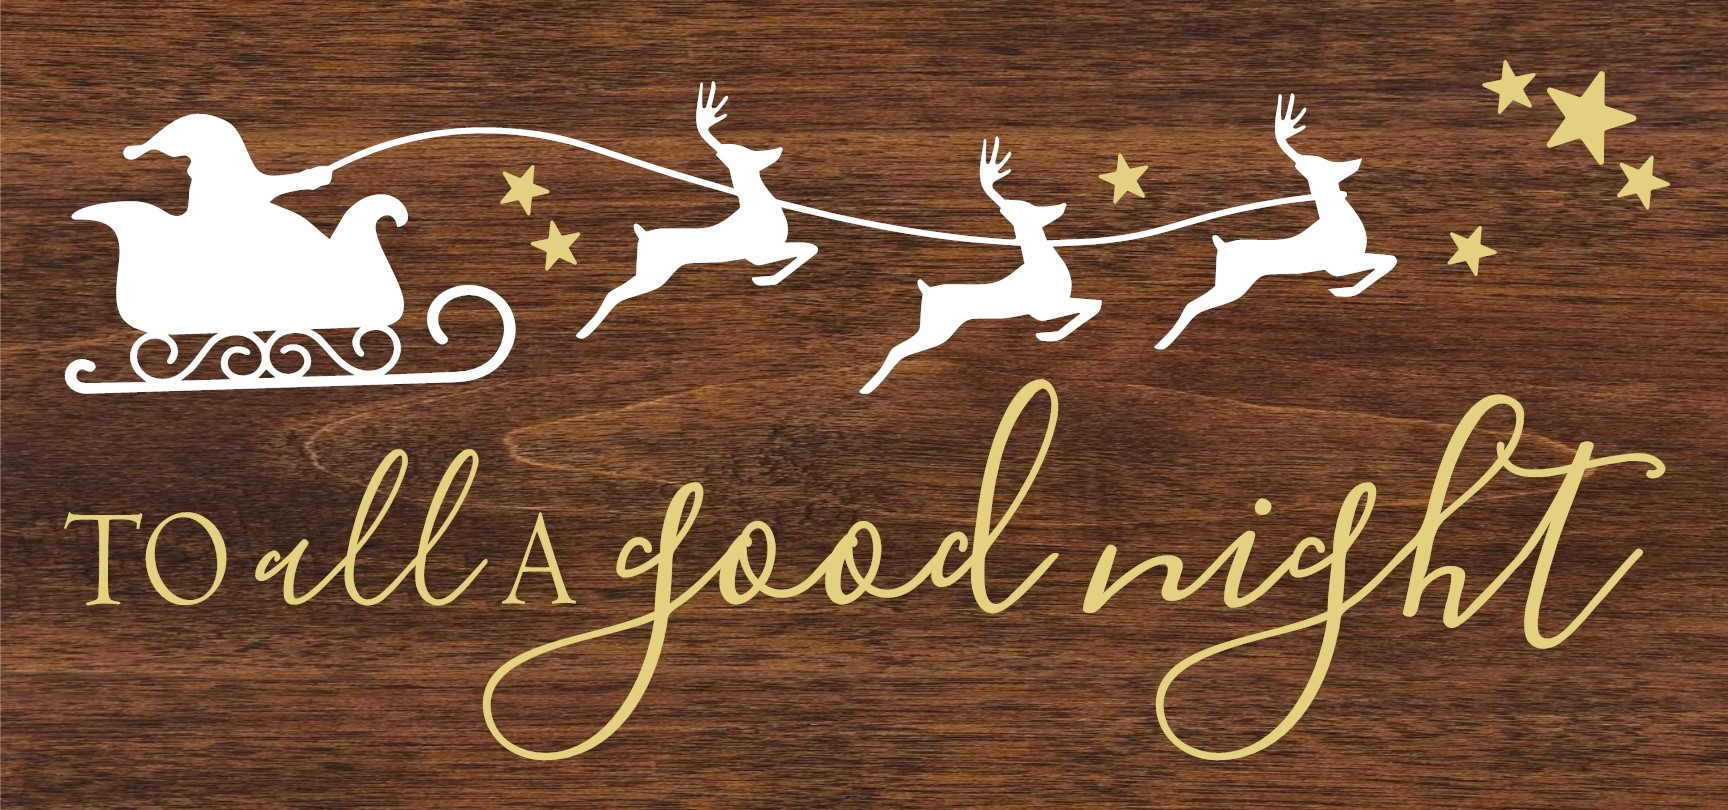 """""""To All a Good Night"""" DIY Christmas Wood Sign Kit (12inx24in)"""